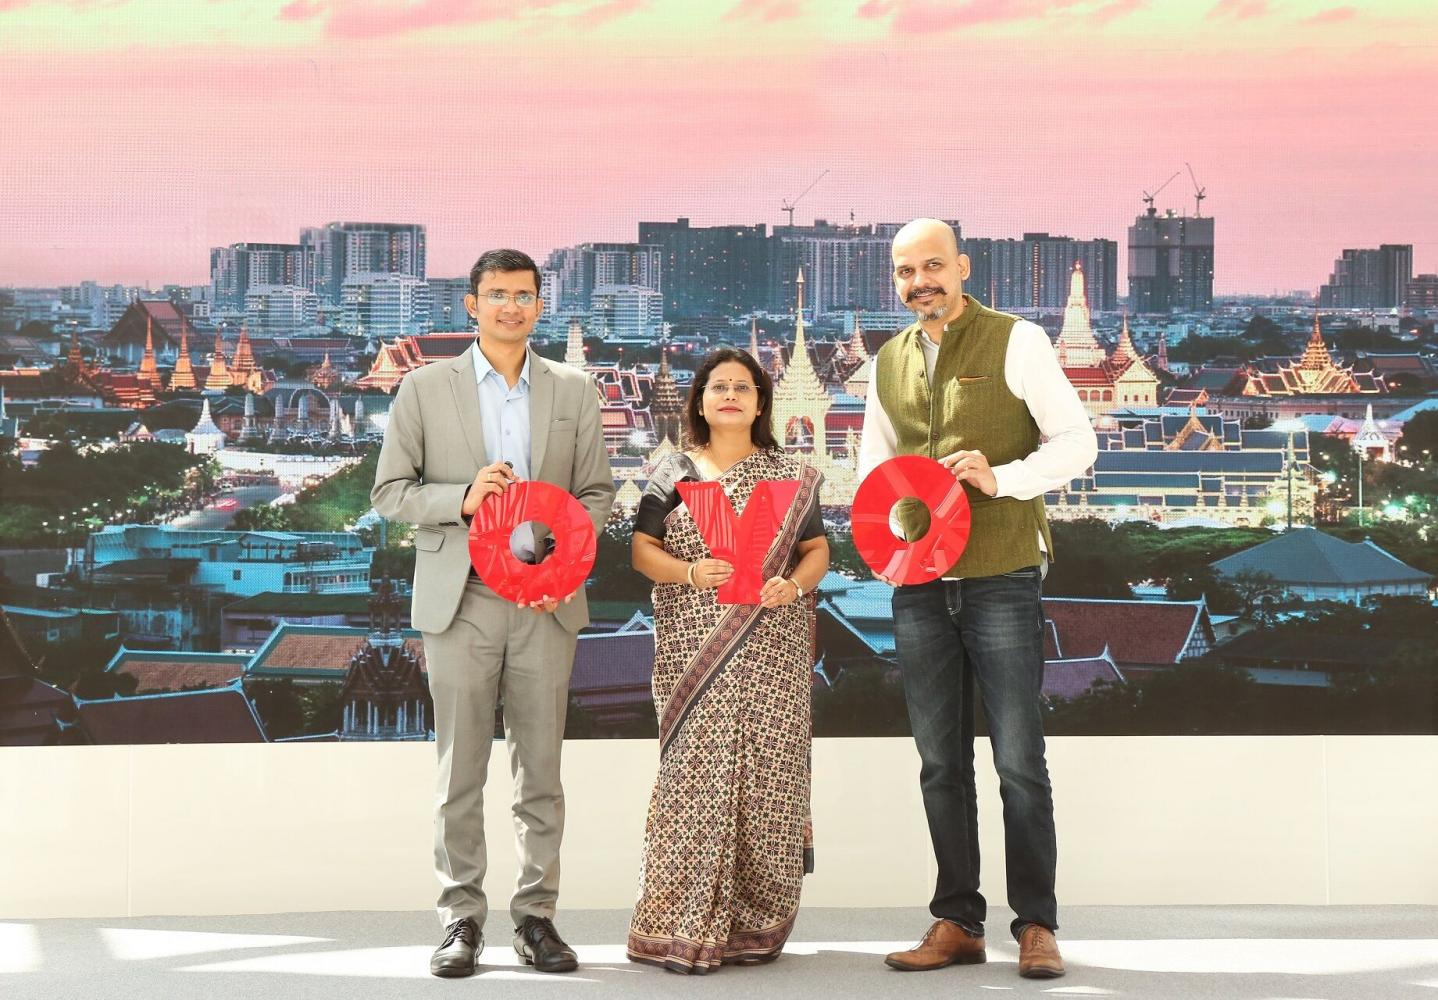 Mr Vaidya (right), Mrs Dubey and Mr Singh celebrate the arrival of the Oyo budget hotel chain in Thailand.